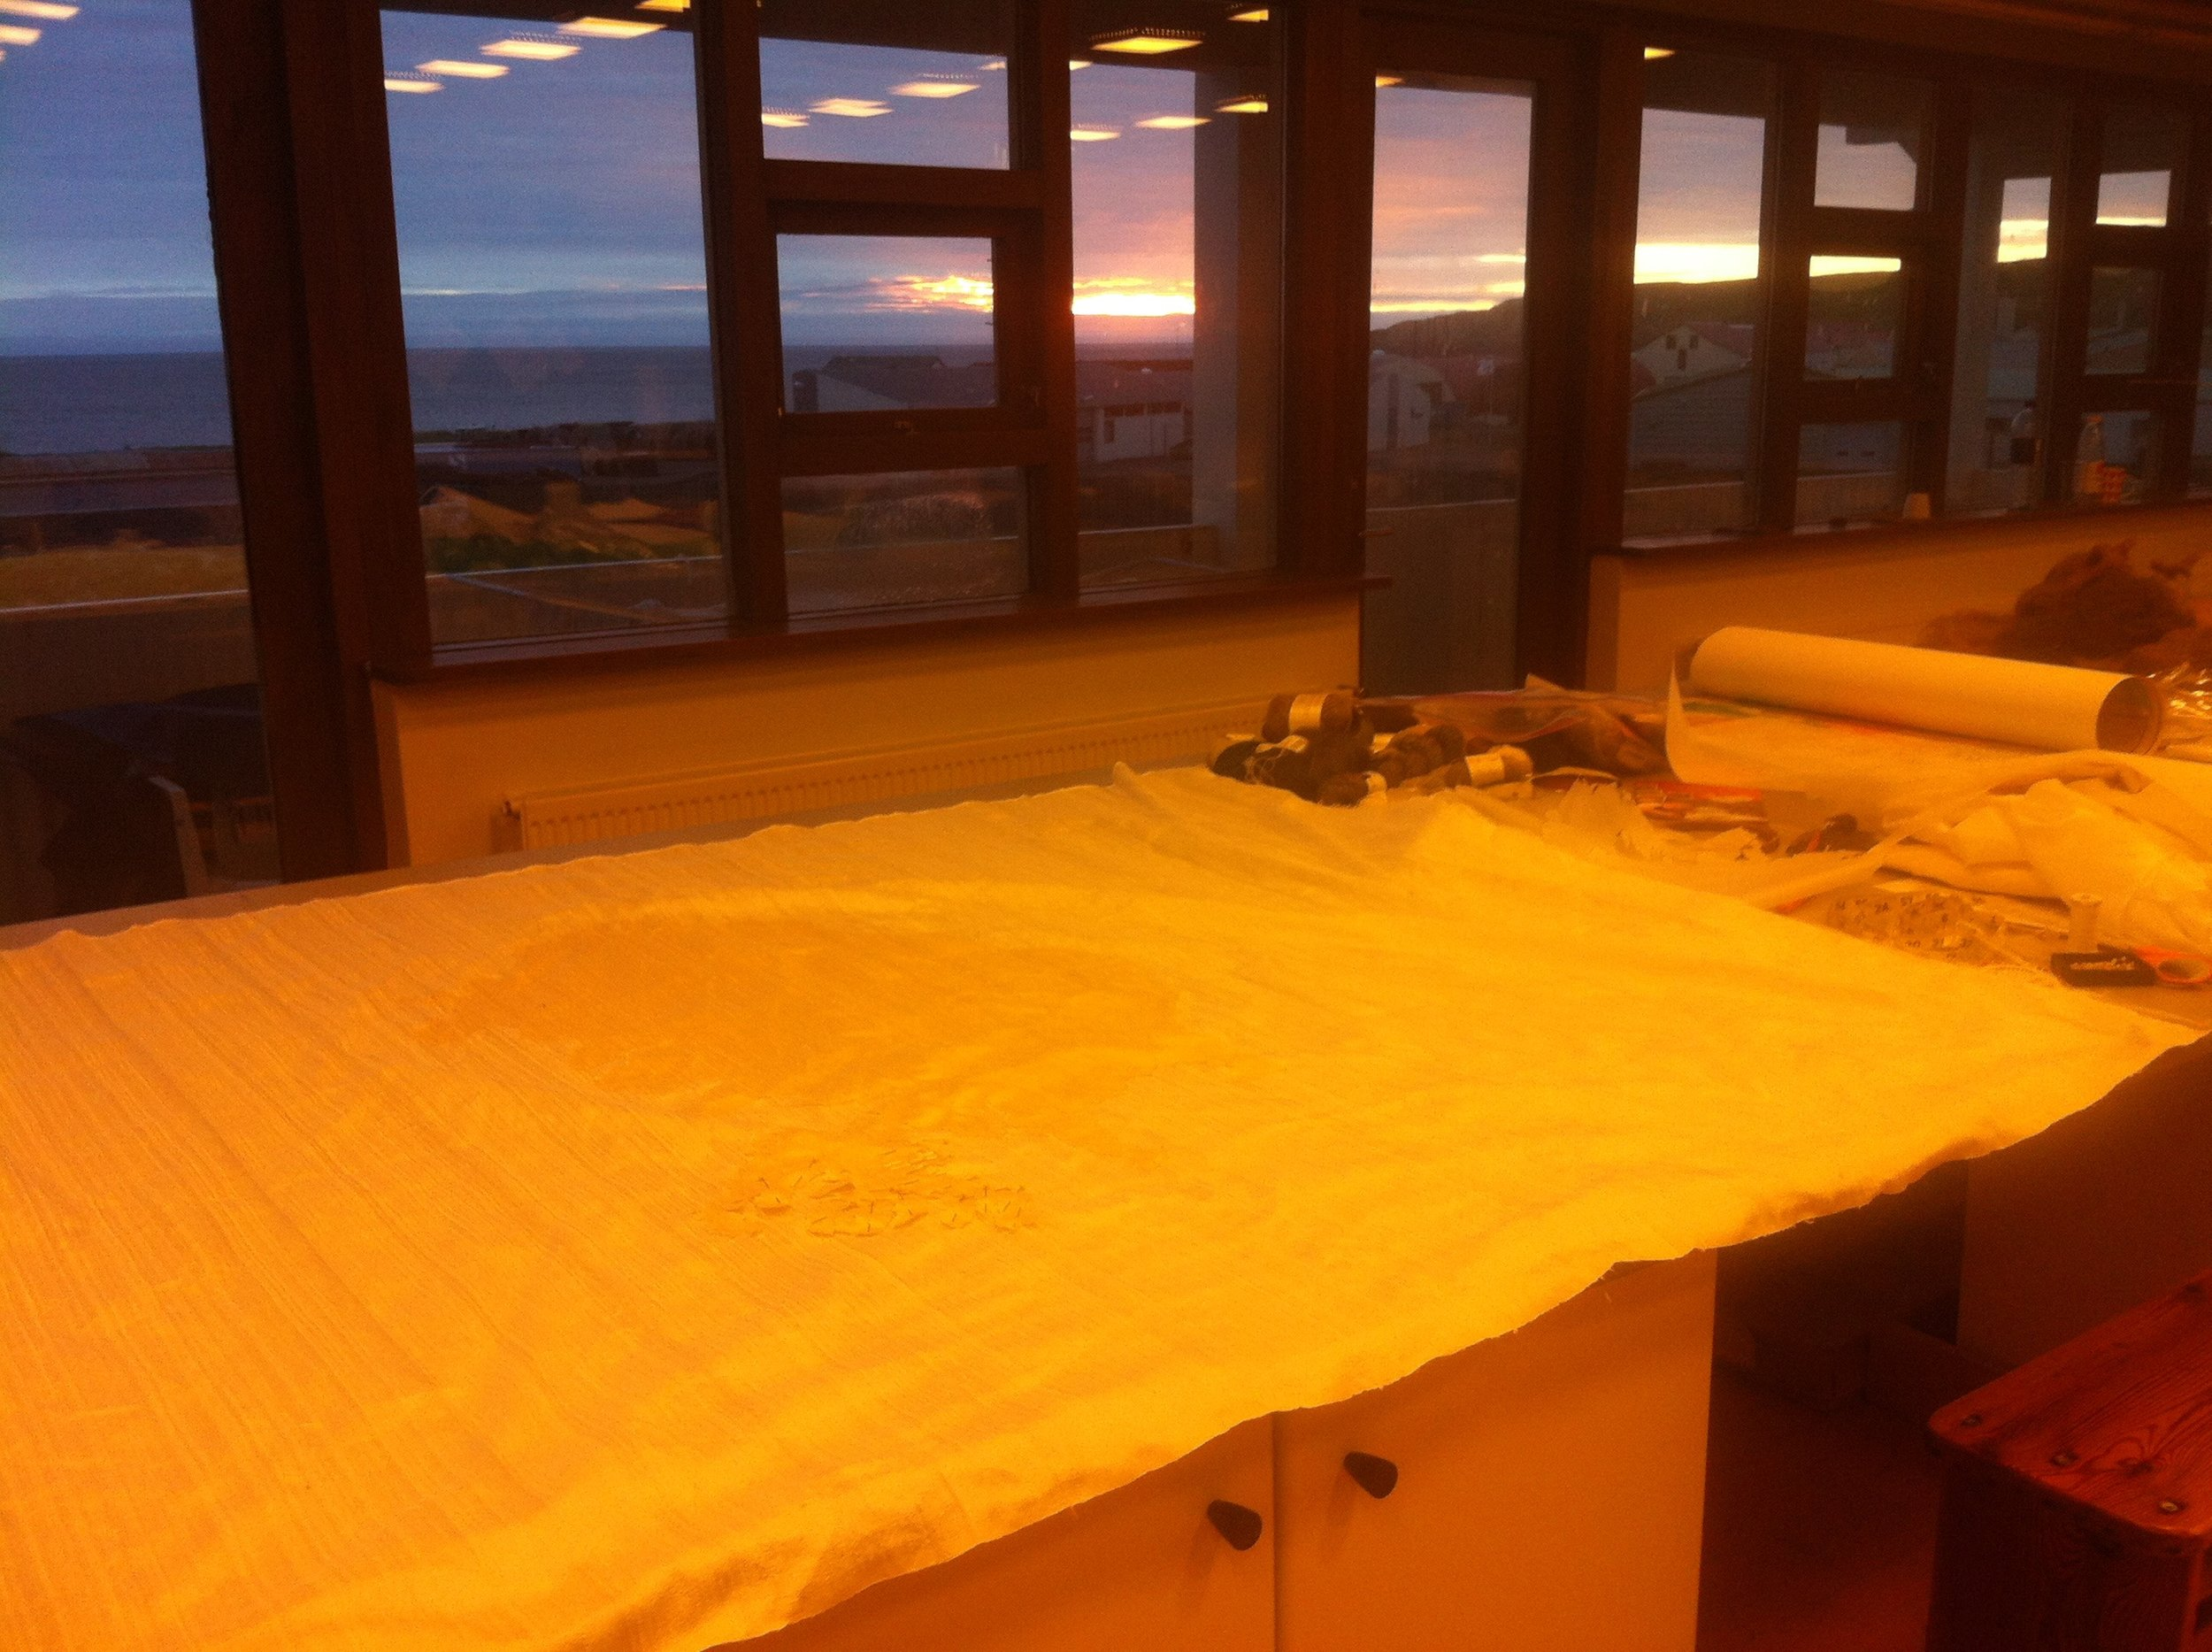 June 2016: Very early morning in the studio at Textílsetur Íslands. The warm tones in the foreground — a photographic oddity created by the tones of the overhead lights. The silk on the table is actually white. Most compelling is the light in the sky, out the windows.